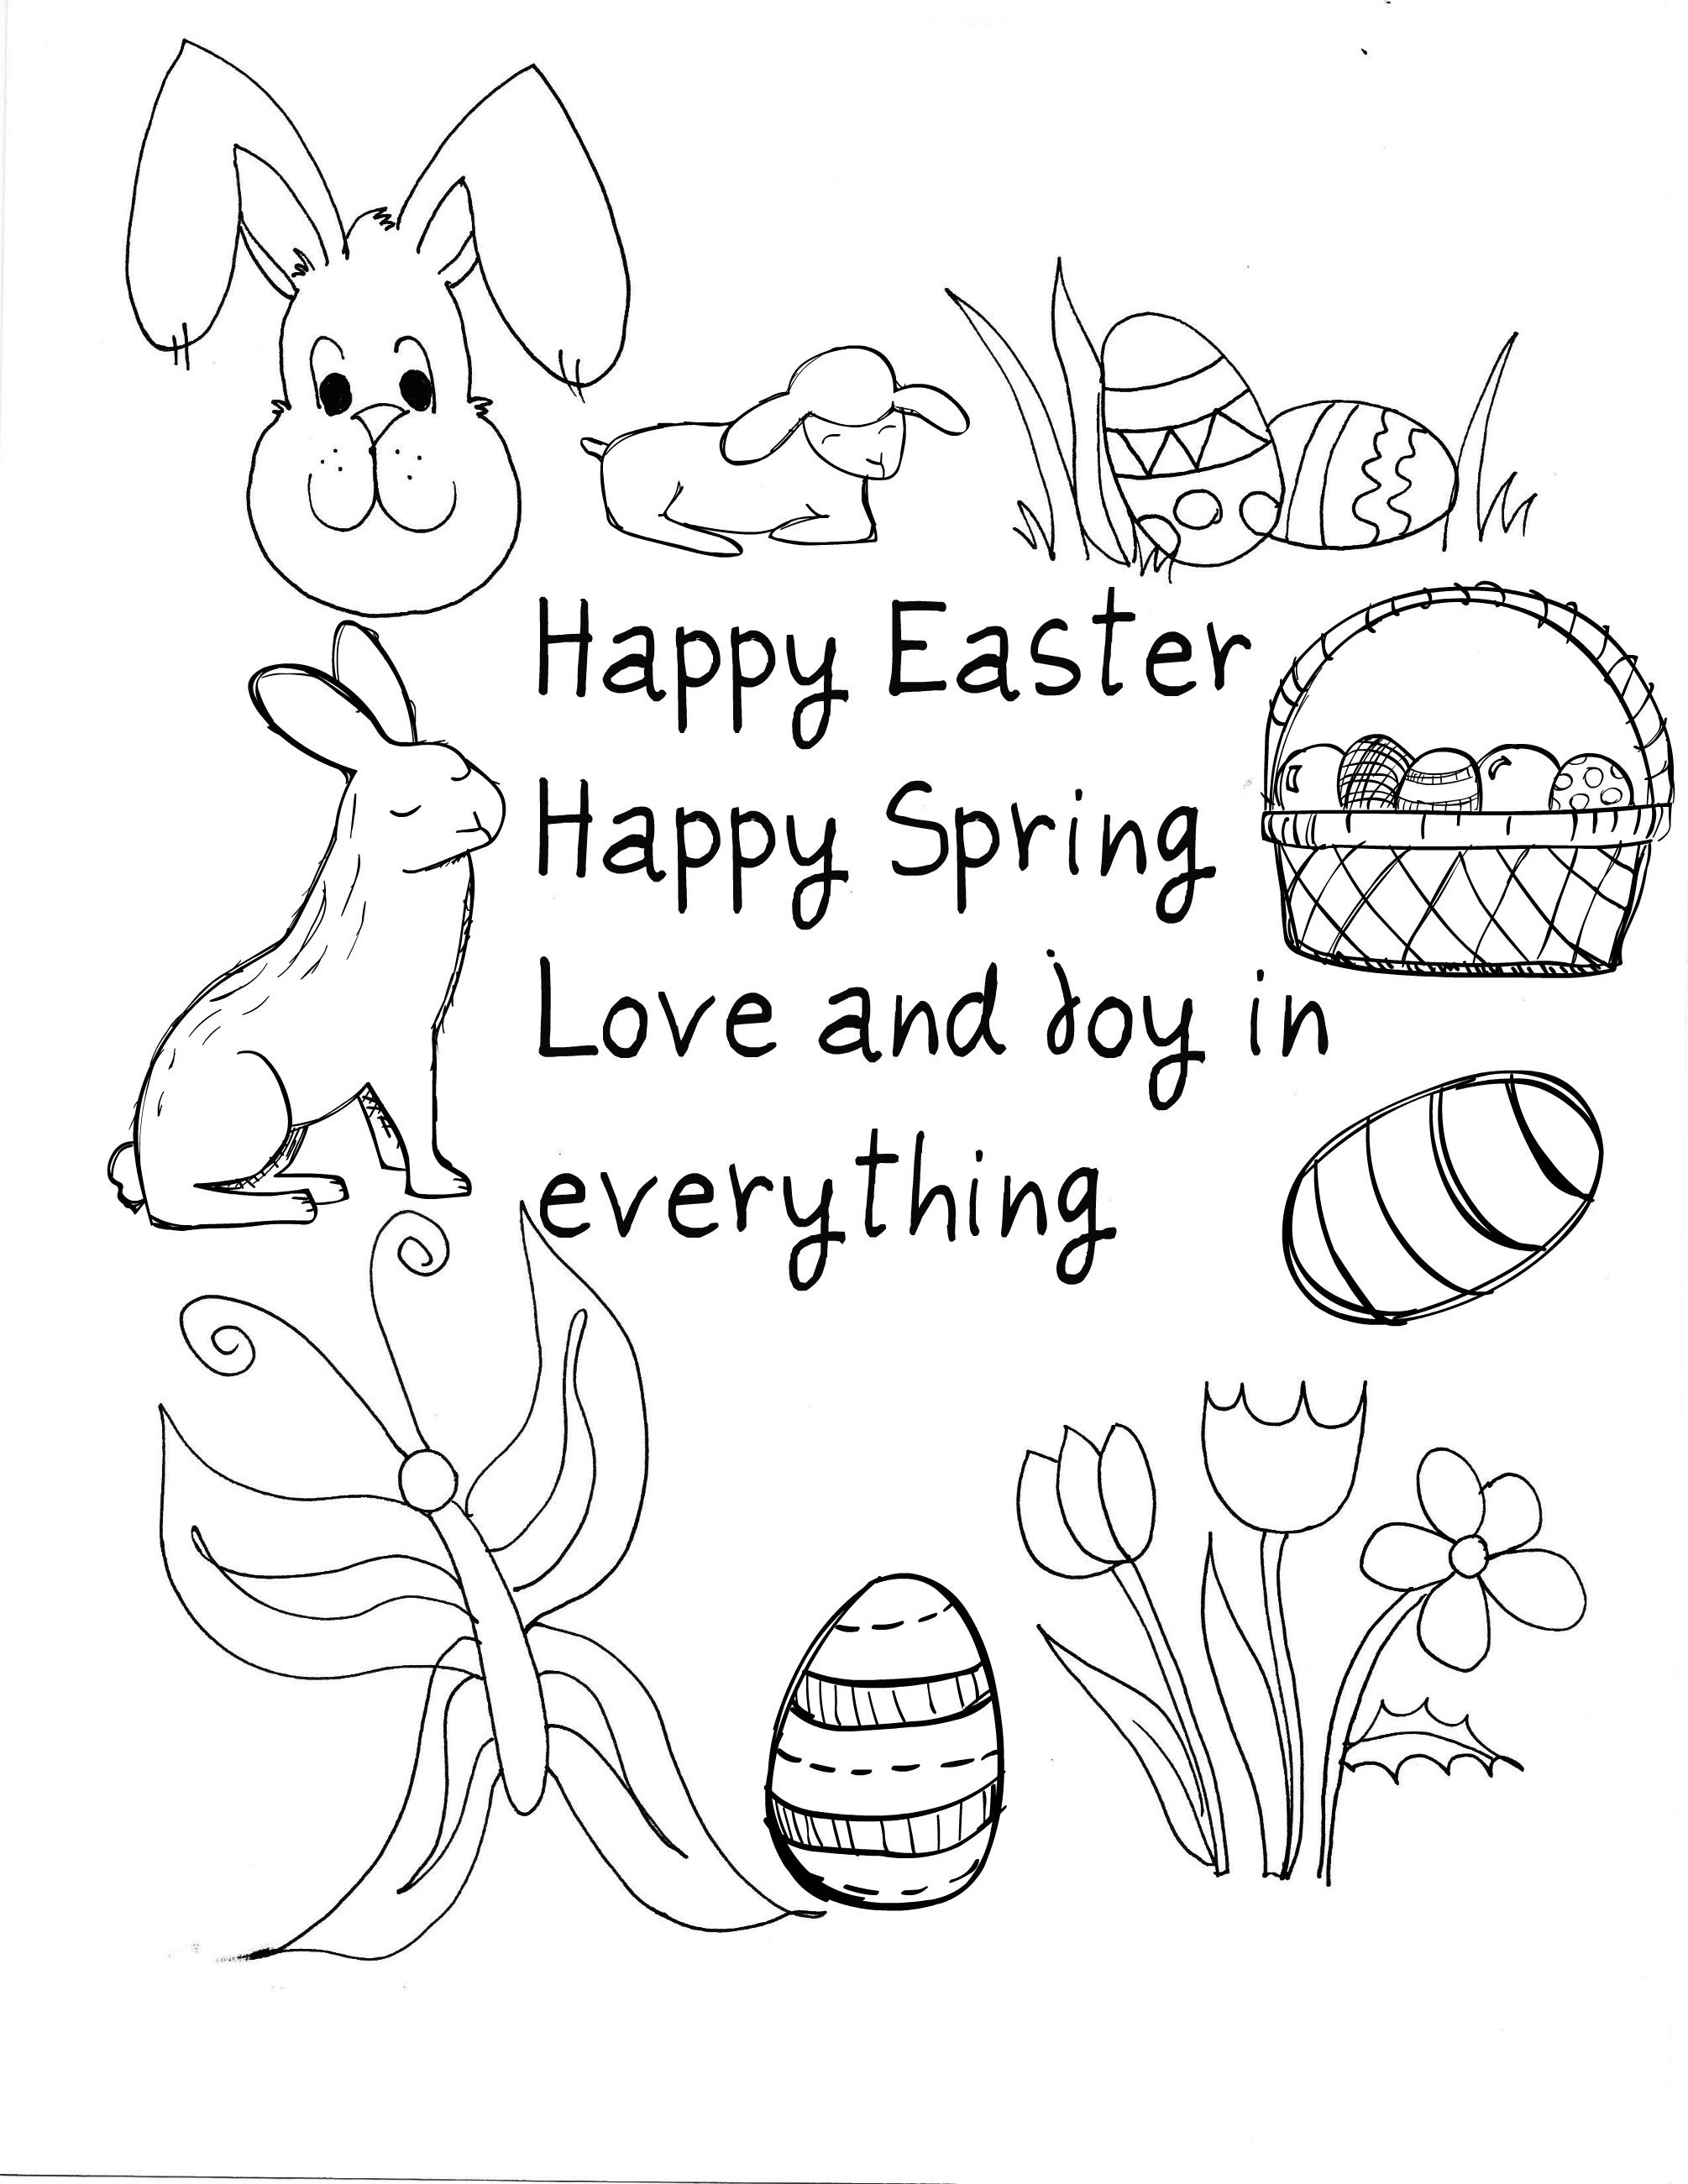 38 Happy Easter Coloring Page Happy Easter Wishes Free Coloring Download Of Delighted Bunny Print Out Coloring Pages Easter for Kids Crazy Printable